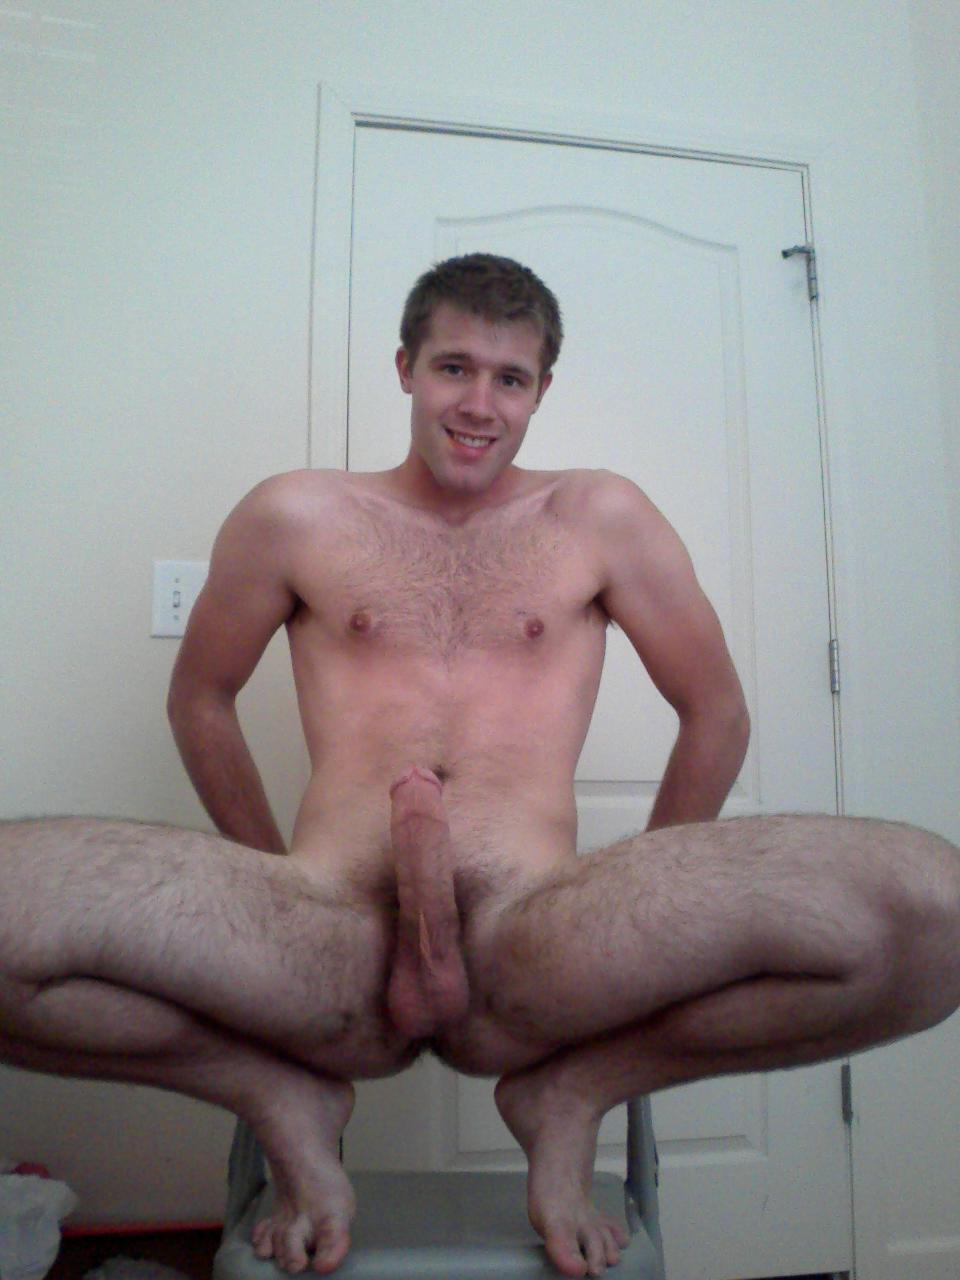 image Naked boys with boners in public and young